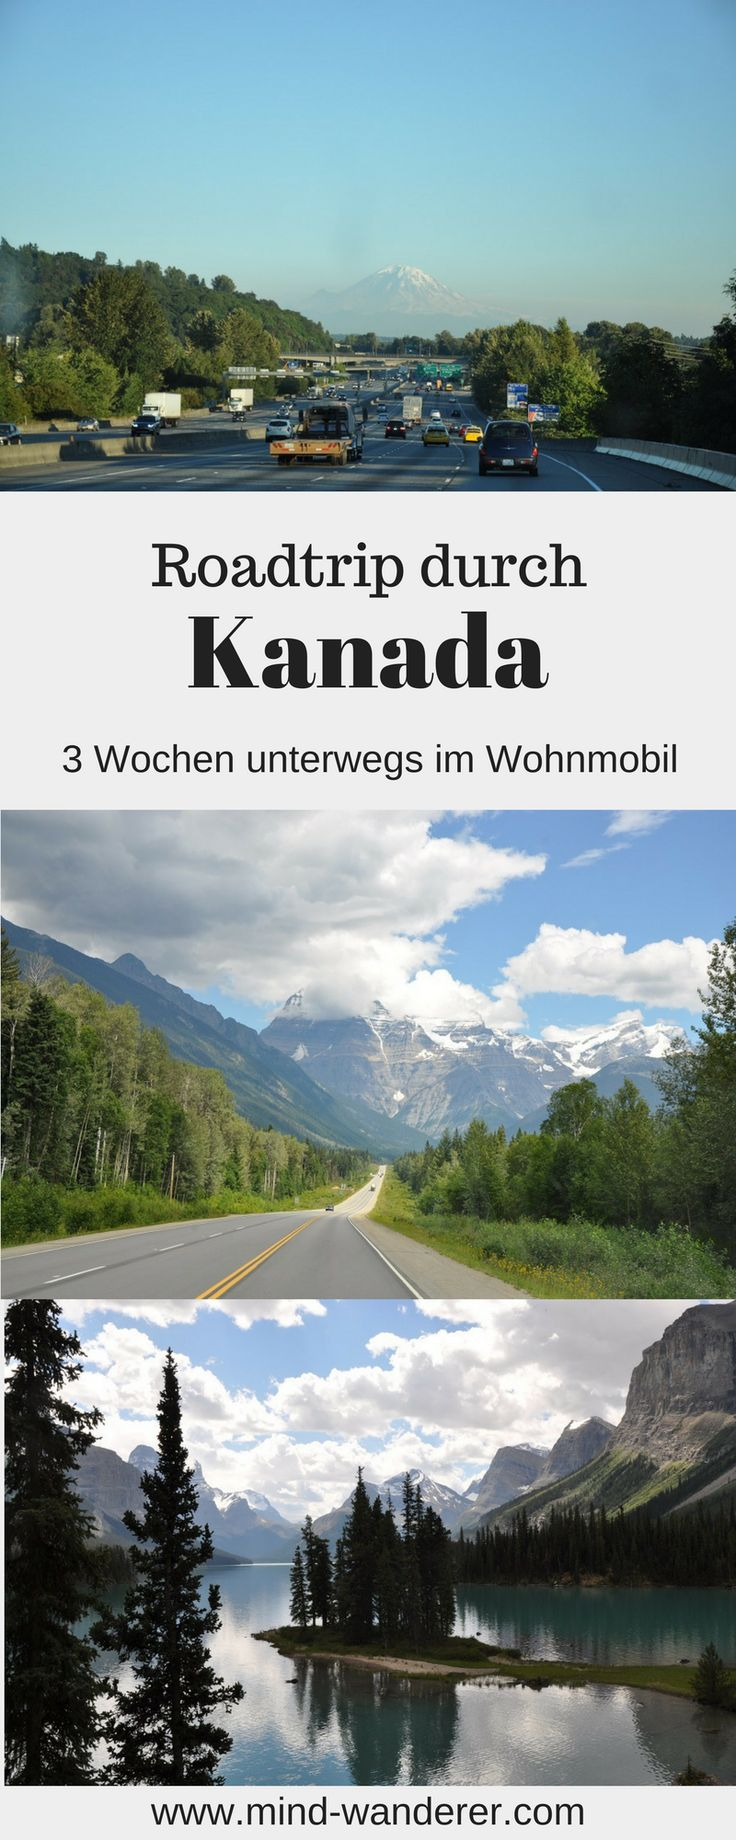 kanada reisen wohnmobil camper roadtrip travel guide canada nord amerika north america canada adventures